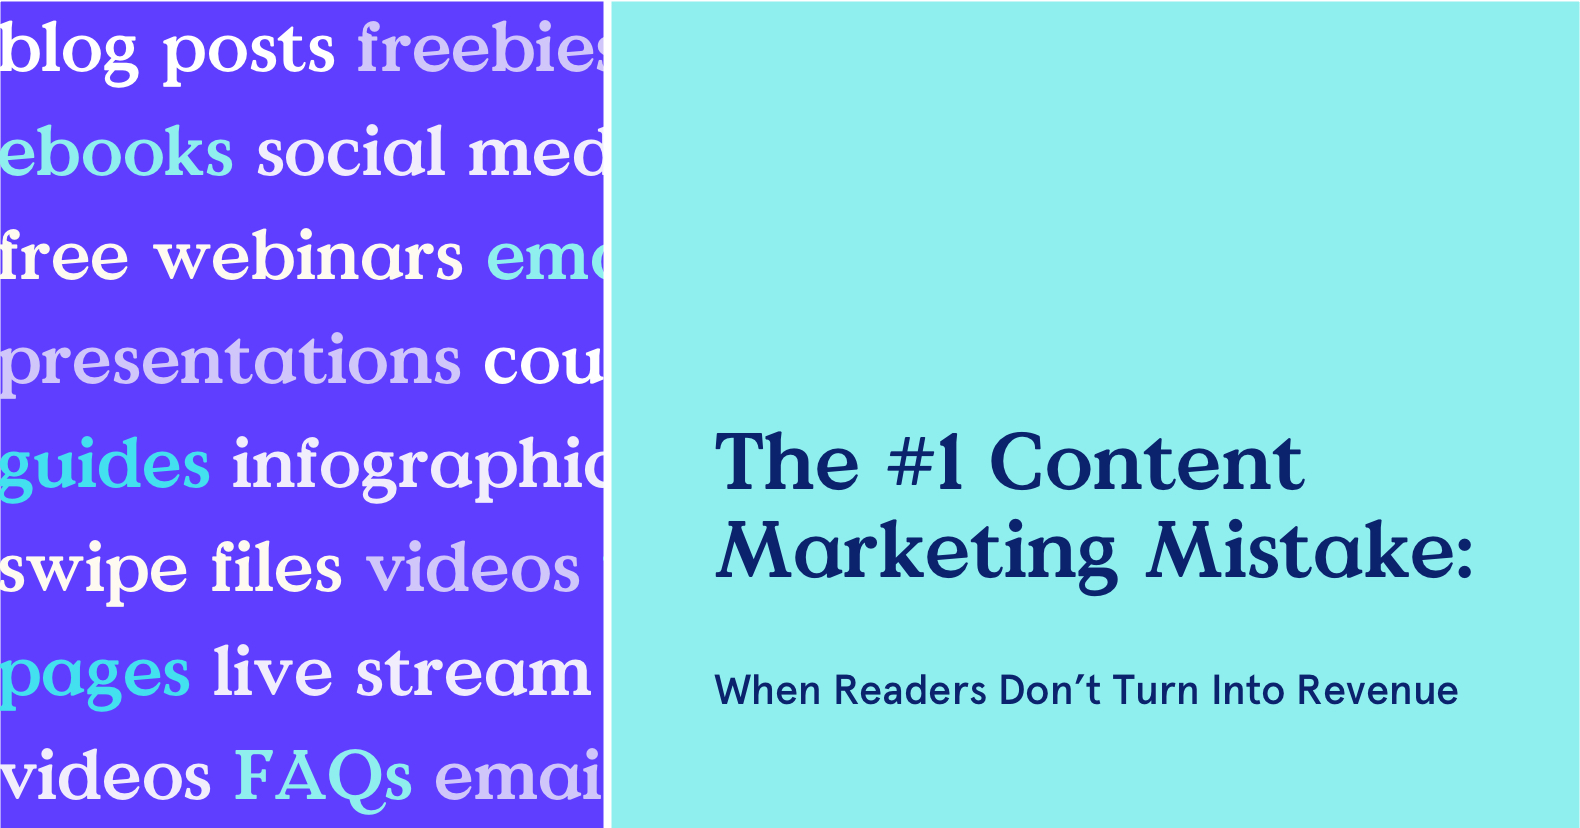 The #1 Content Marketing Mistake: When readers don't turn into revenue